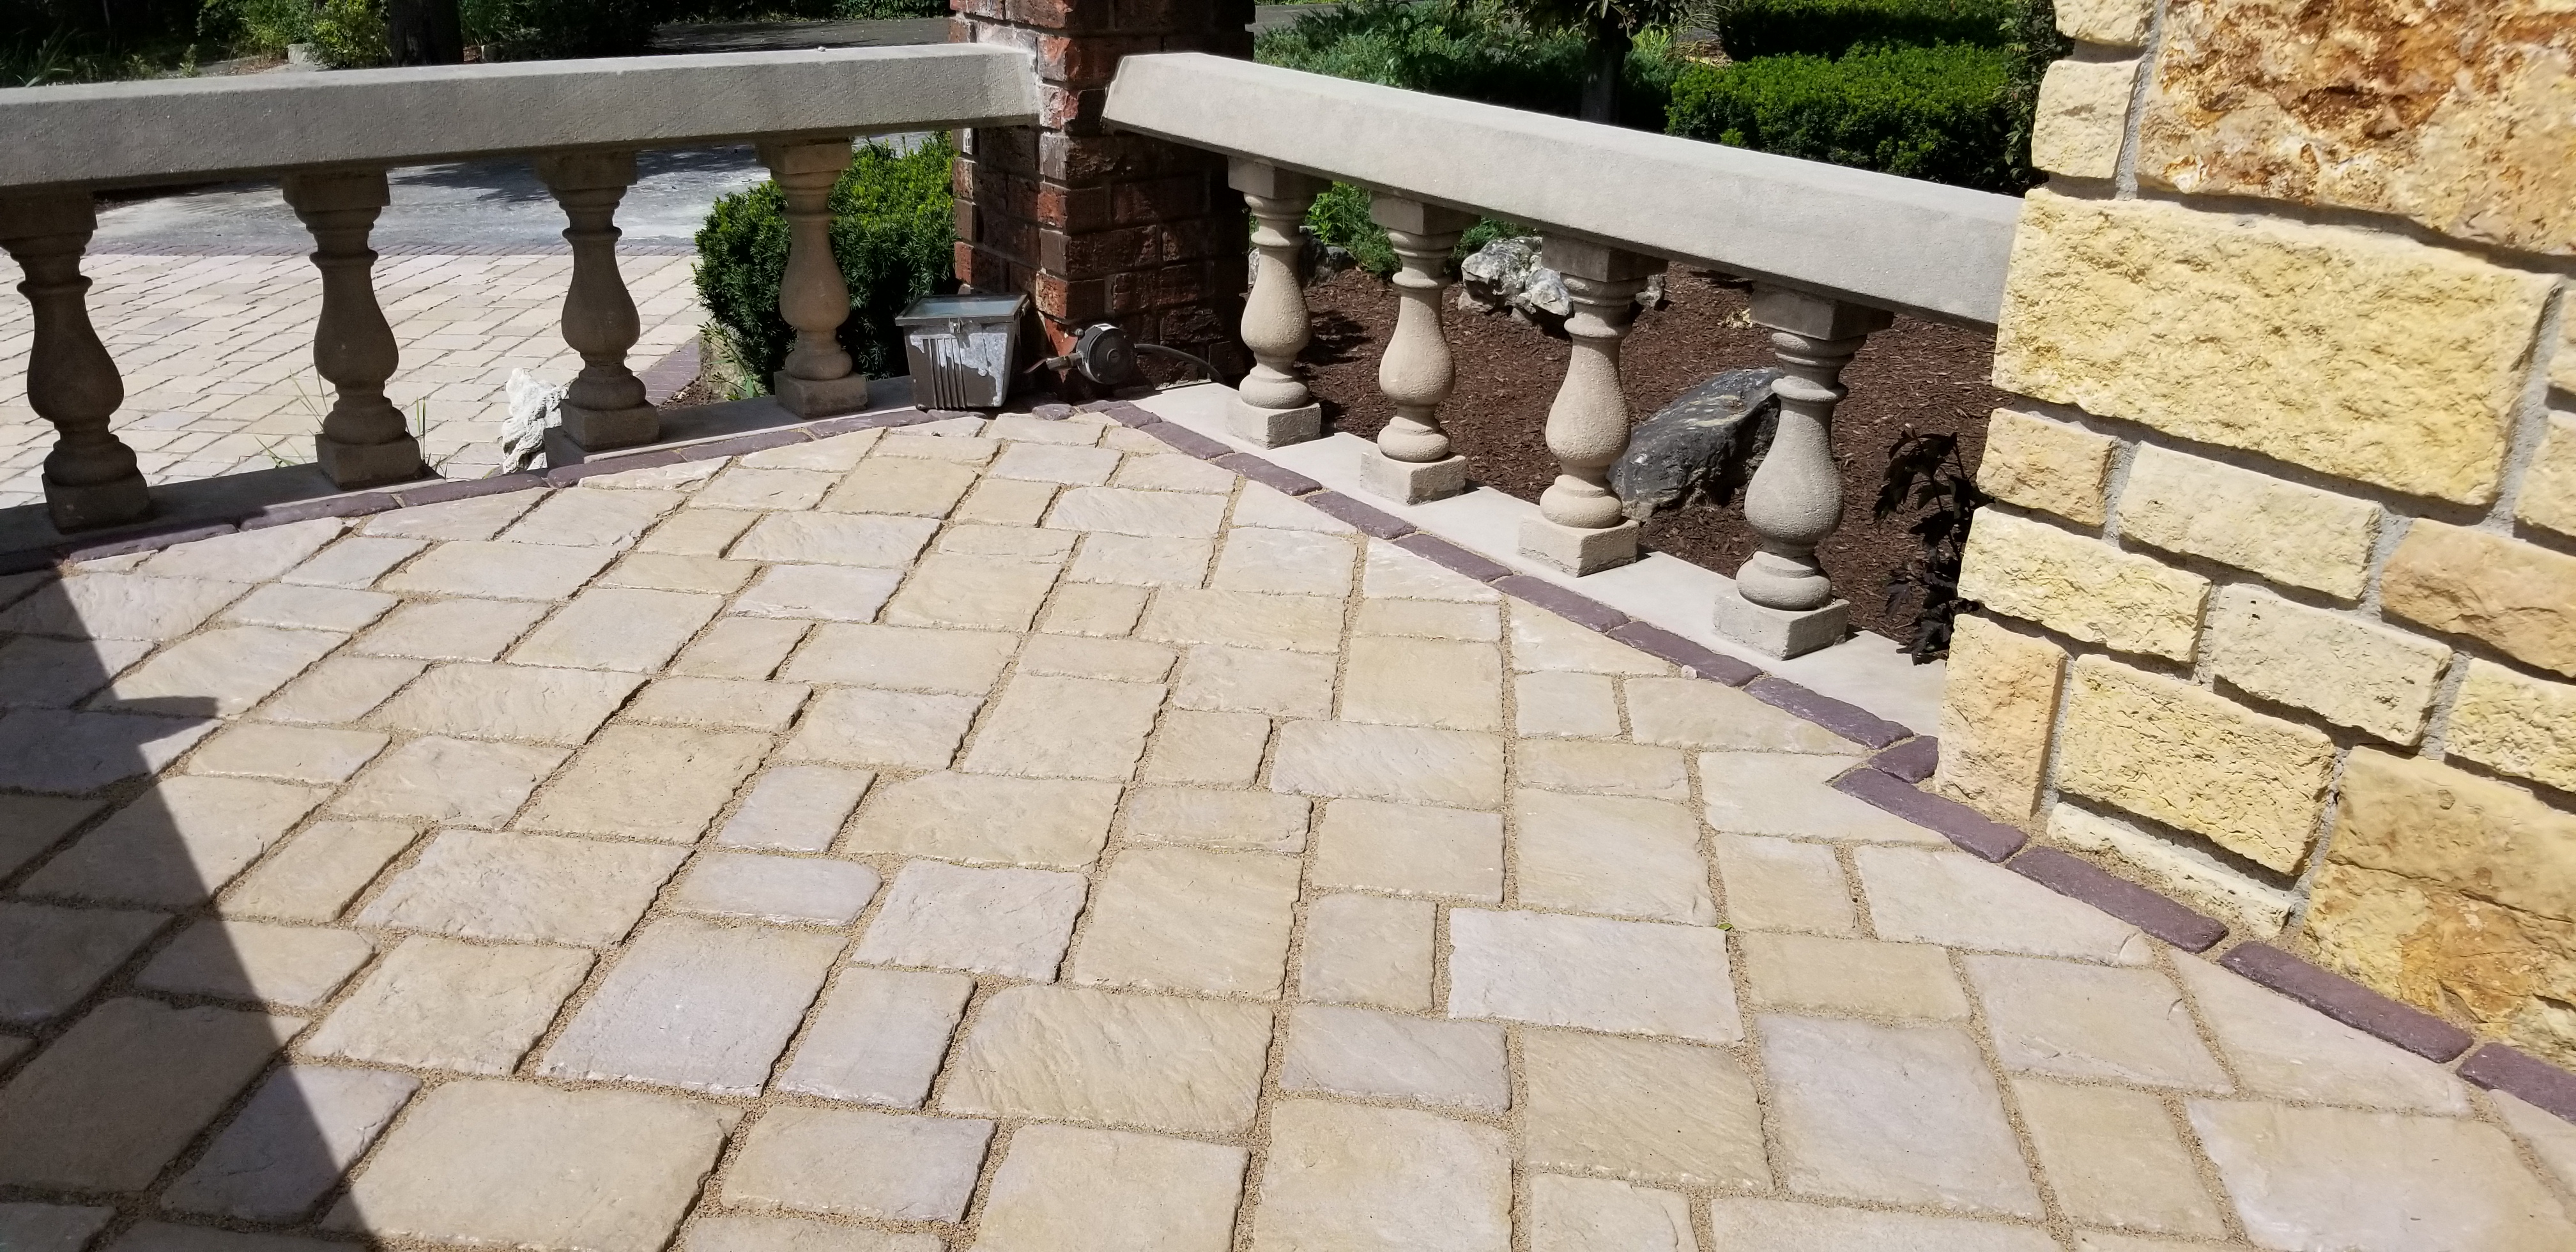 Brick Paver Porch with Accent Border